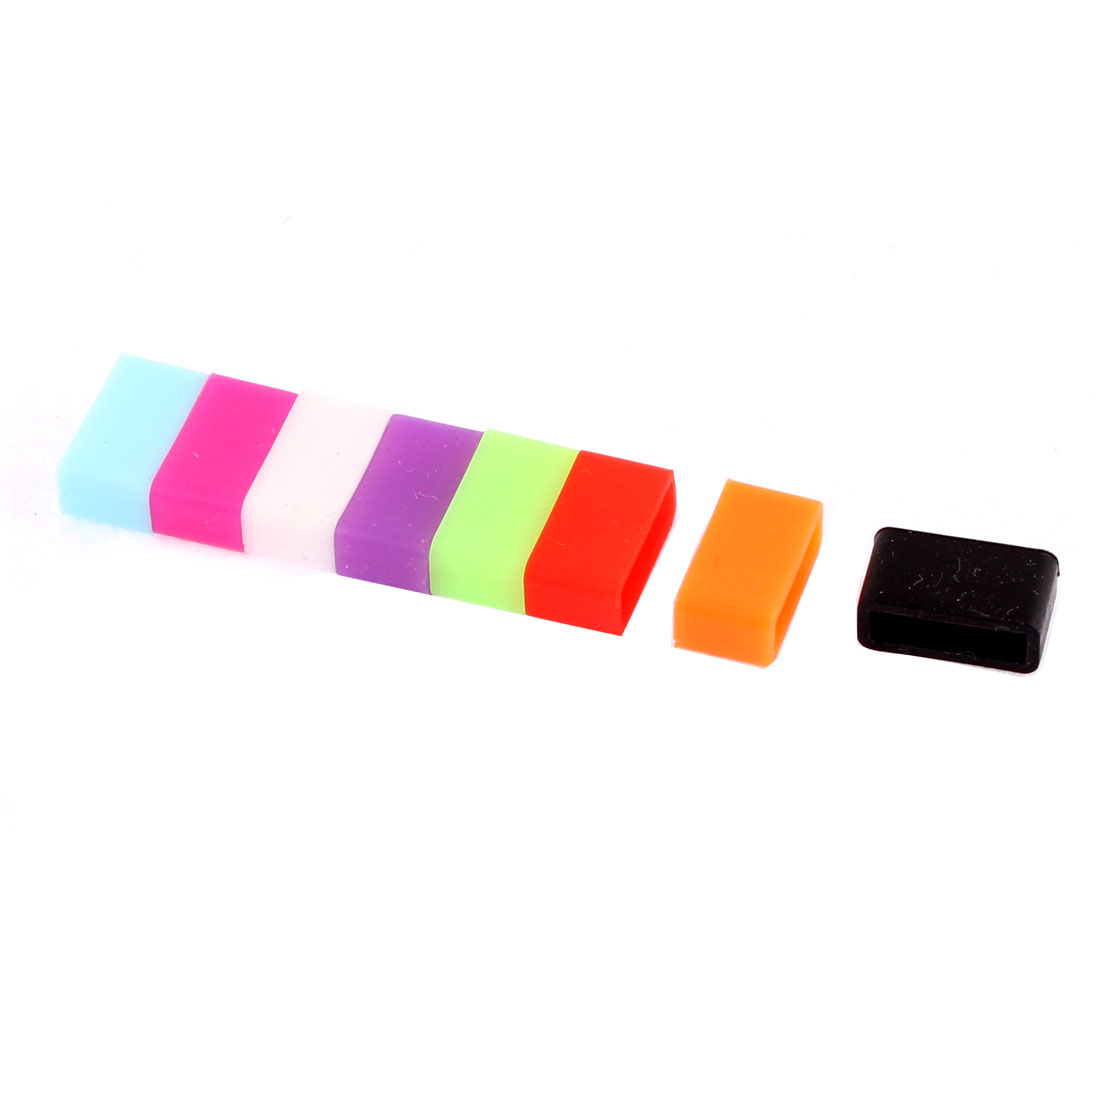 Silicone Watch Retainer Keeper Buckle Holder Ring Loop Hoop for 13mm Width Strap Assorted Color 8 Pcs